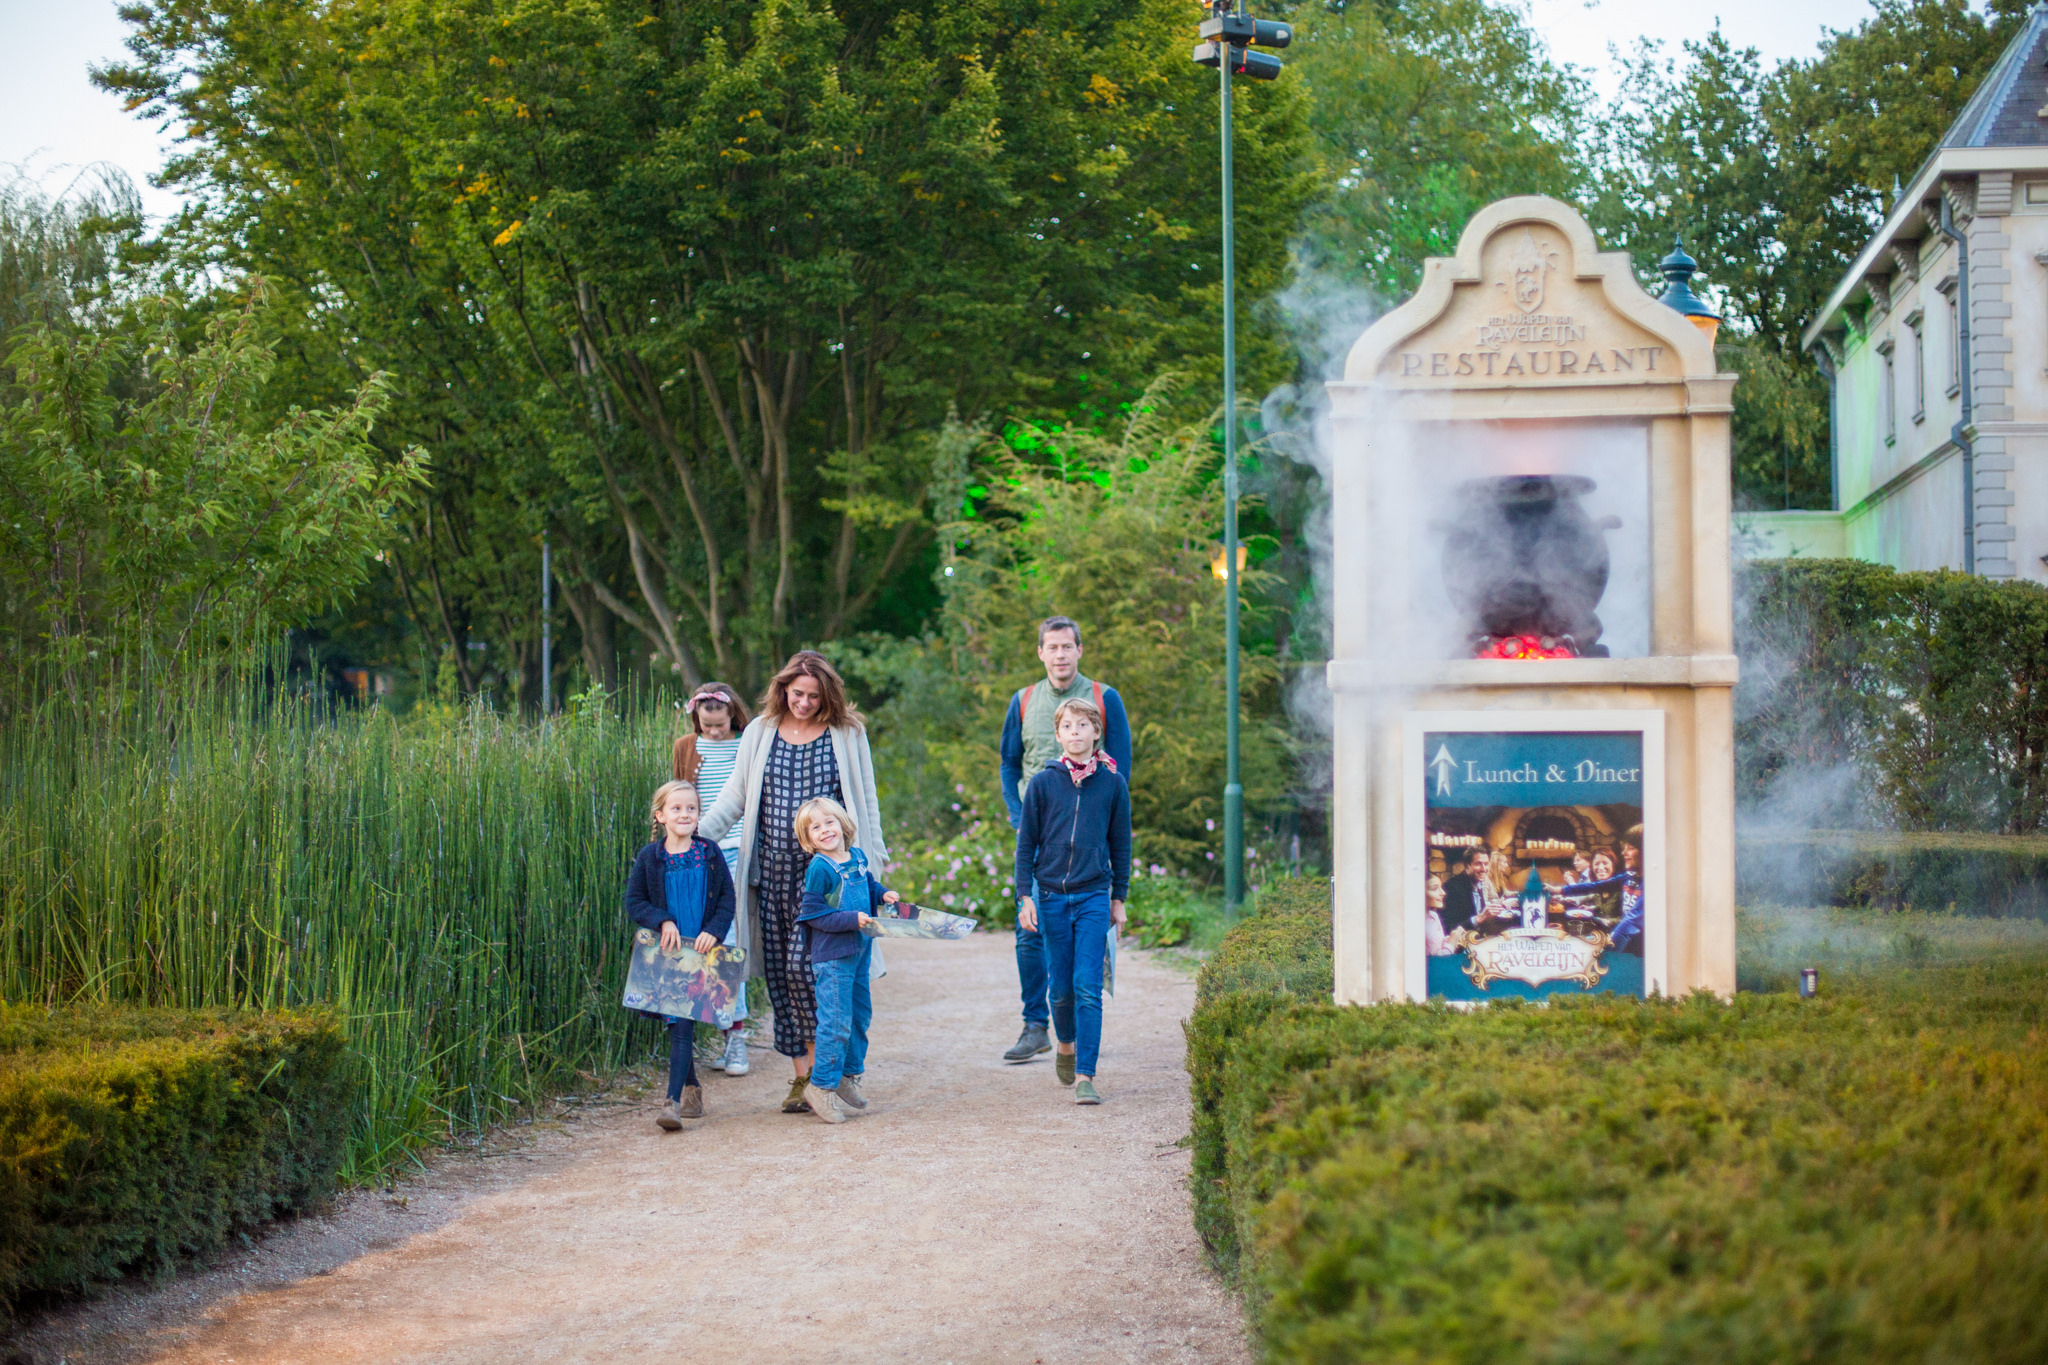 A weekend visit to the Efteling and Beekse Bergen safari